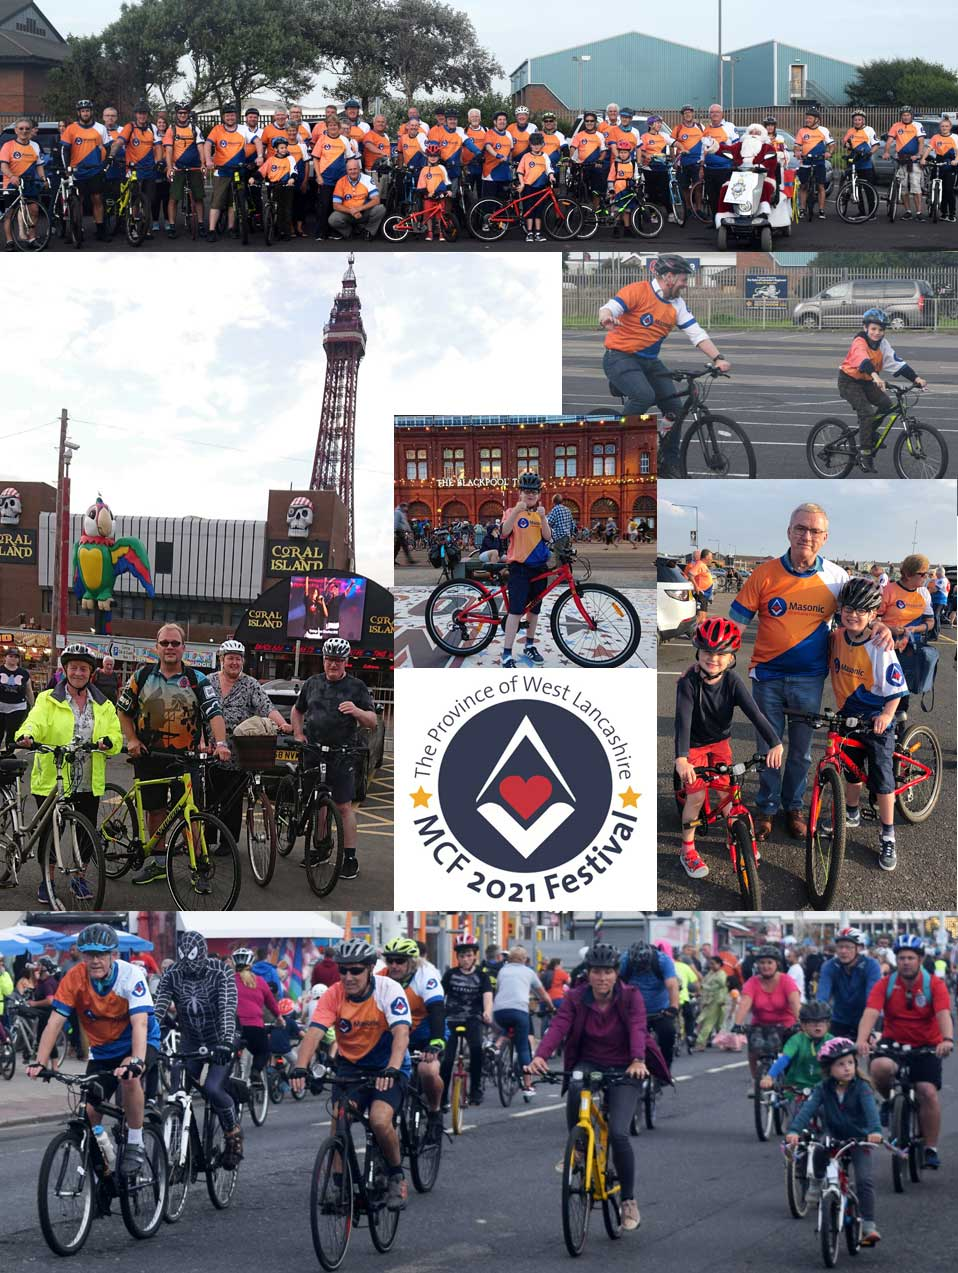 The riders are pictured before the start and during their ride along seafront.